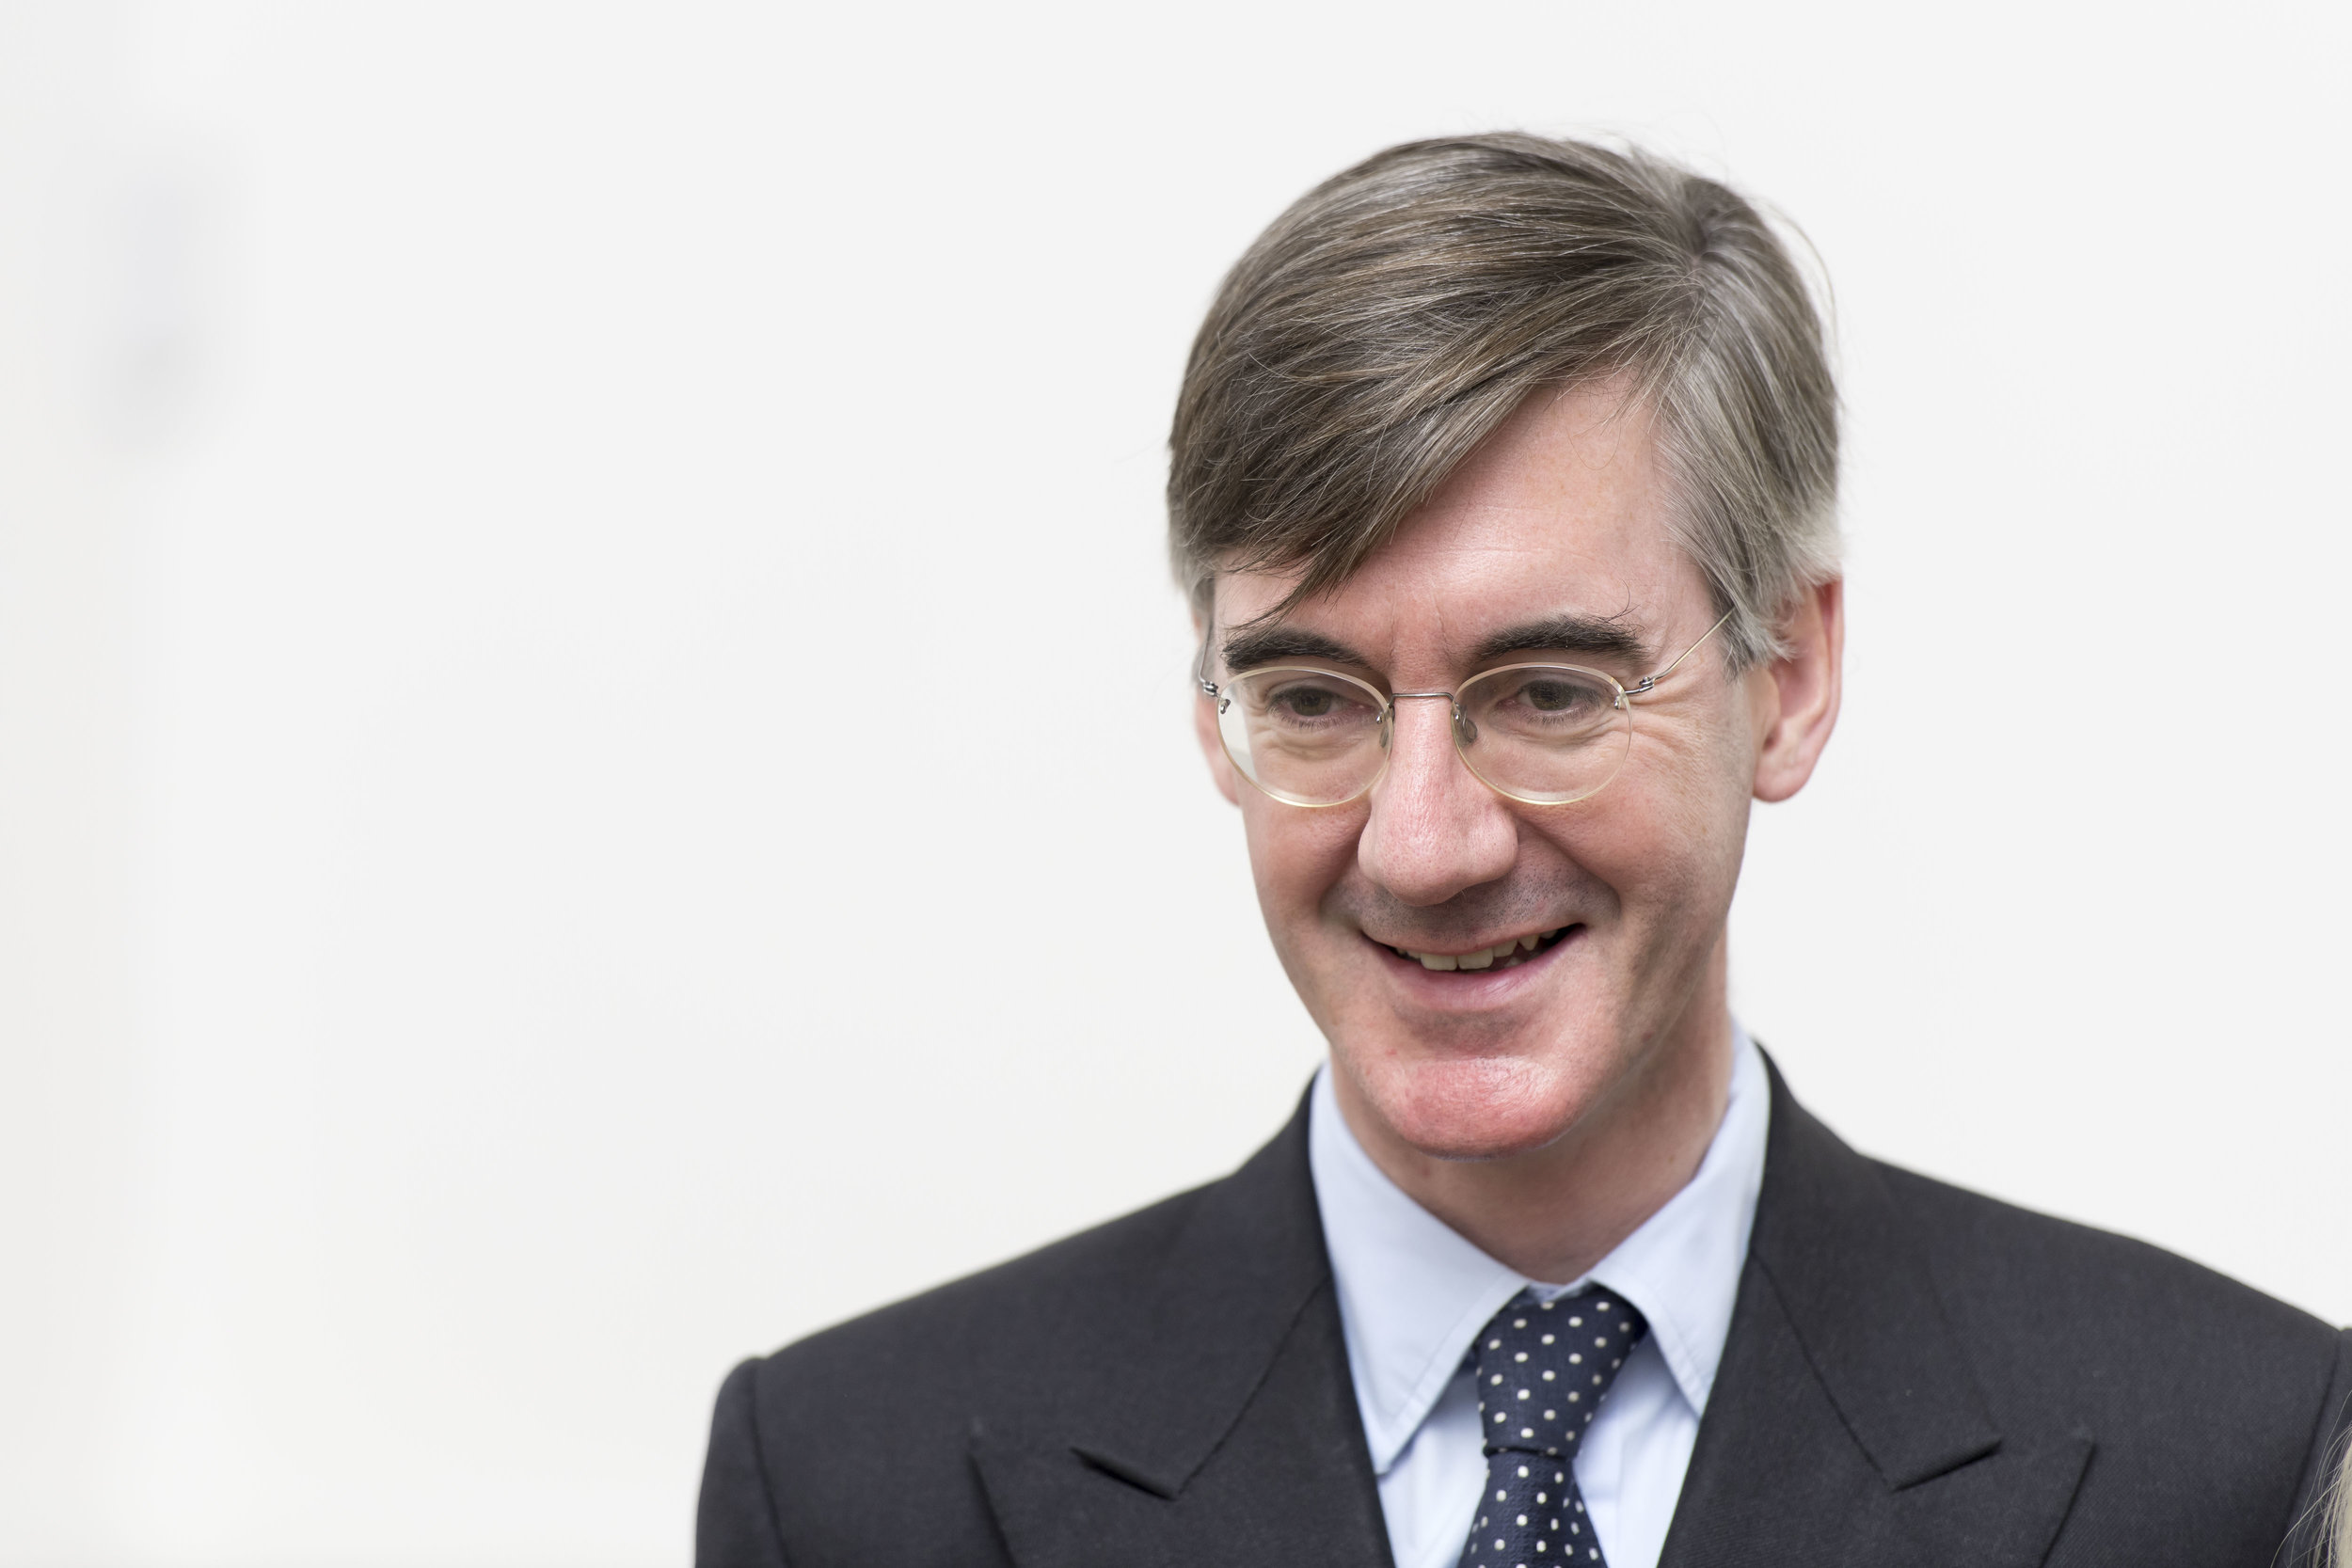 """CARDIFF, WALES - SEPTEMBER 29: Jacob Rees-Mogg, MP for North East Somerset, speaks during a talk called Faith in the Future at the Cornerstone Church on September 29, 2017 in Cardiff, Wales. The talk, titled """"Faith in the Future"""", explores issues surrounding the importance of faith in the public and private life of our society. Jacob Rees-Mogg has recently caused controversy over his opposition to abortion after rape or incest. (Photo by Matthew Horwood/Getty Images)"""